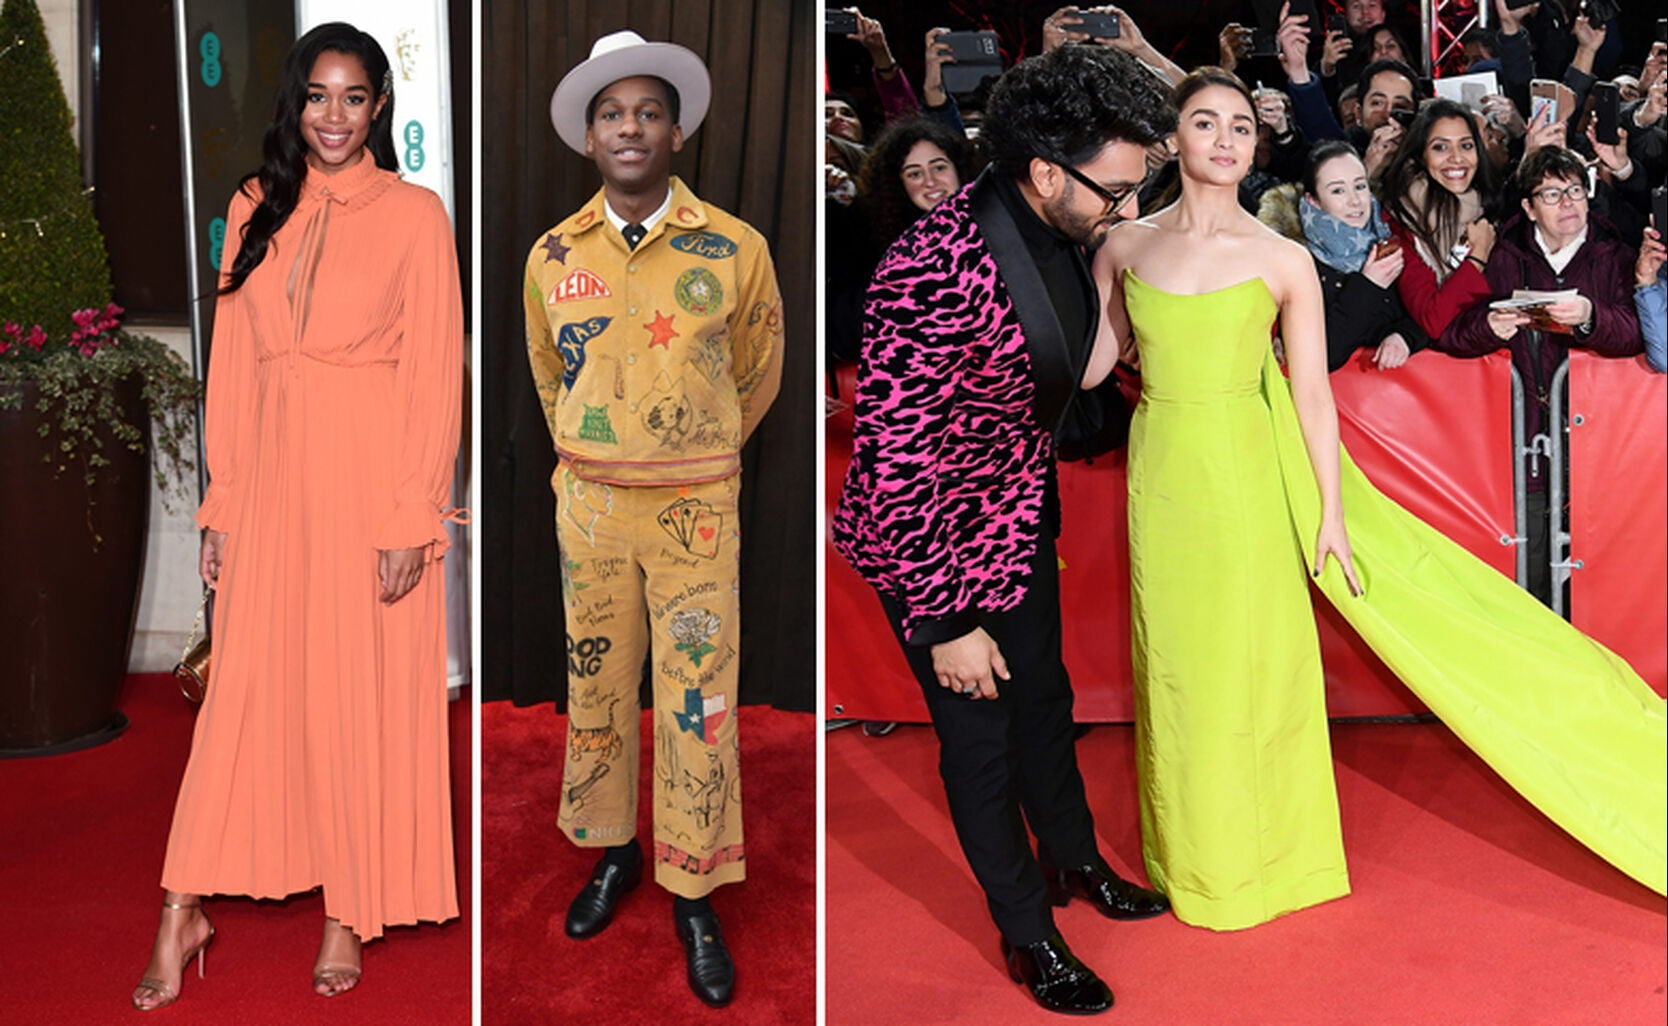 Laura Harrier, Leon Bridges, Ranveer Singh with Alia Bhatt